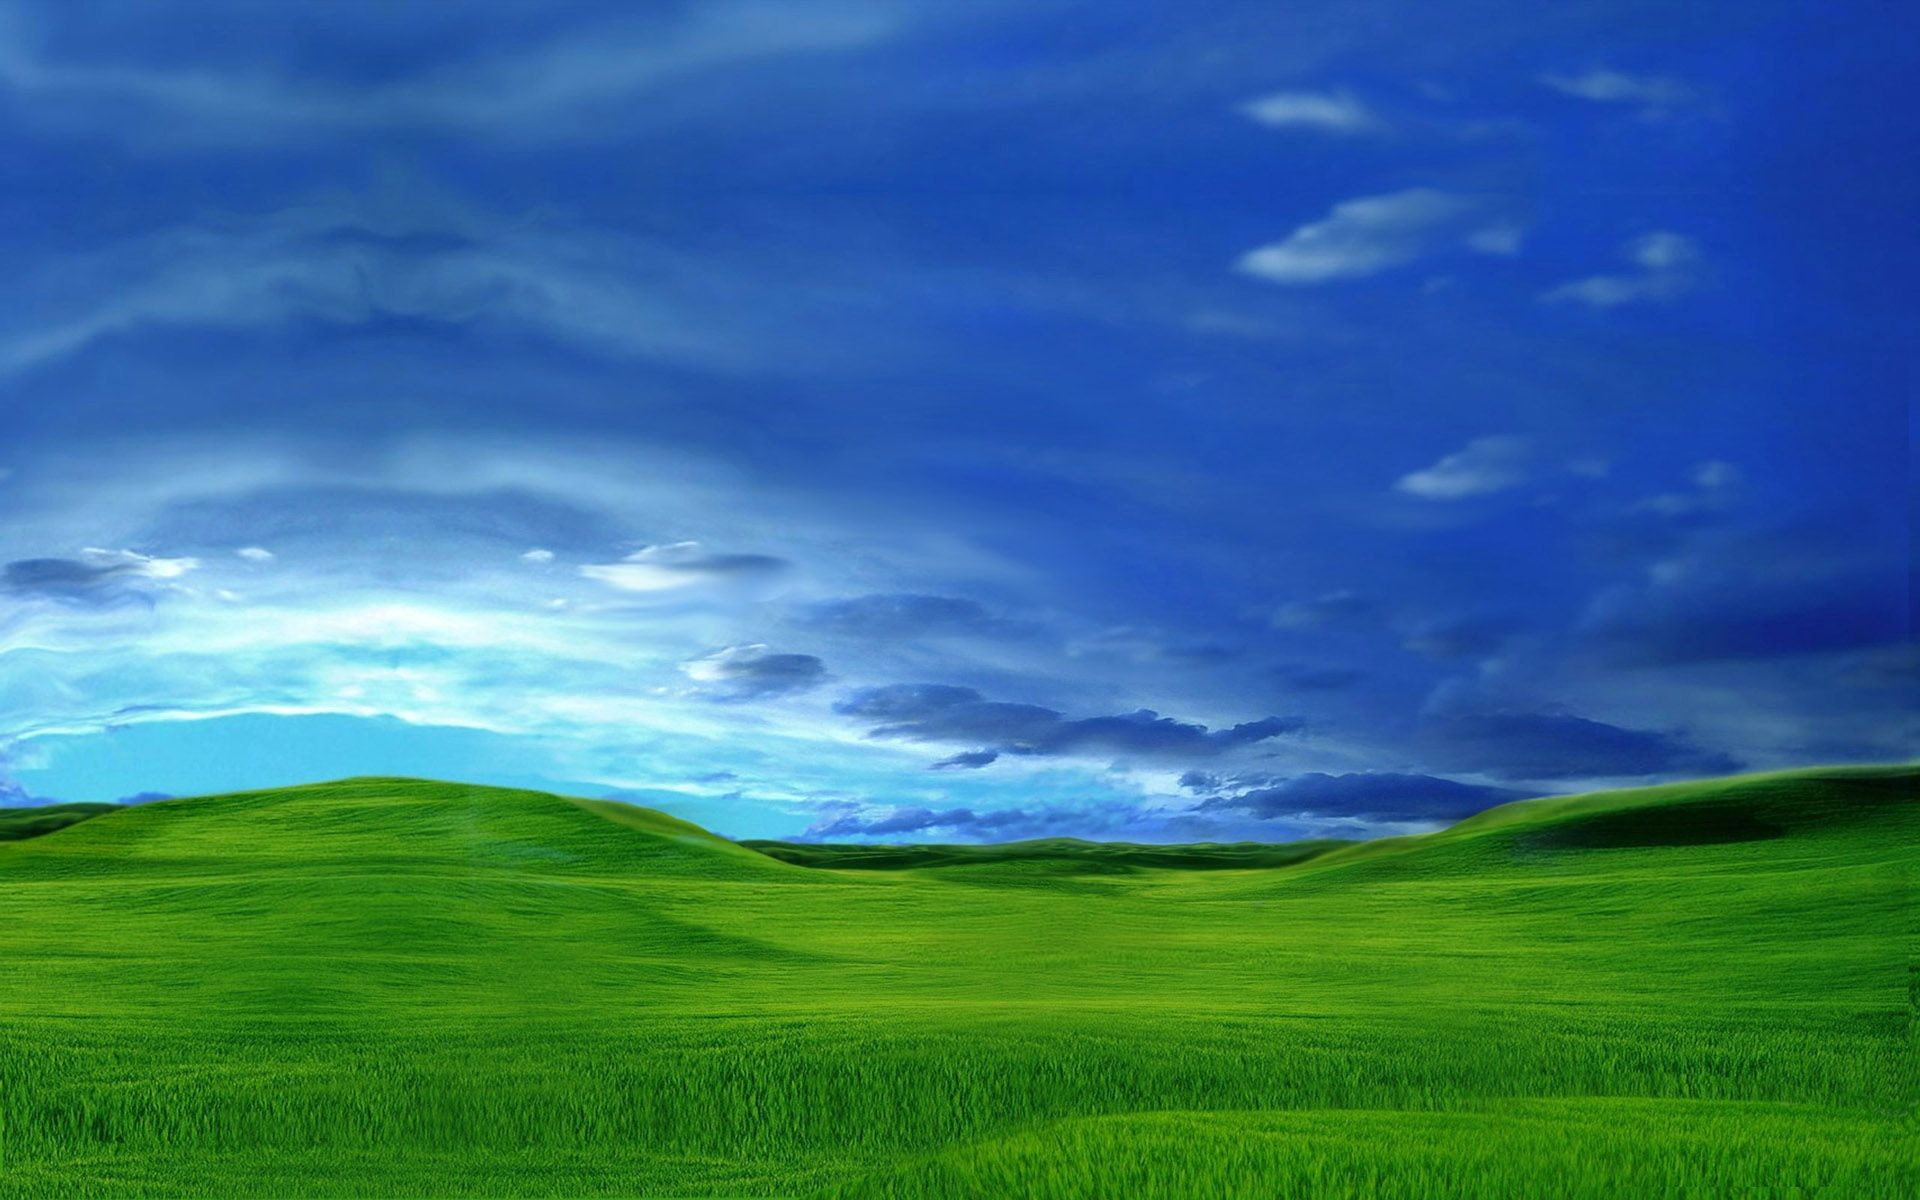 windows vista wallpaper themes 40 images